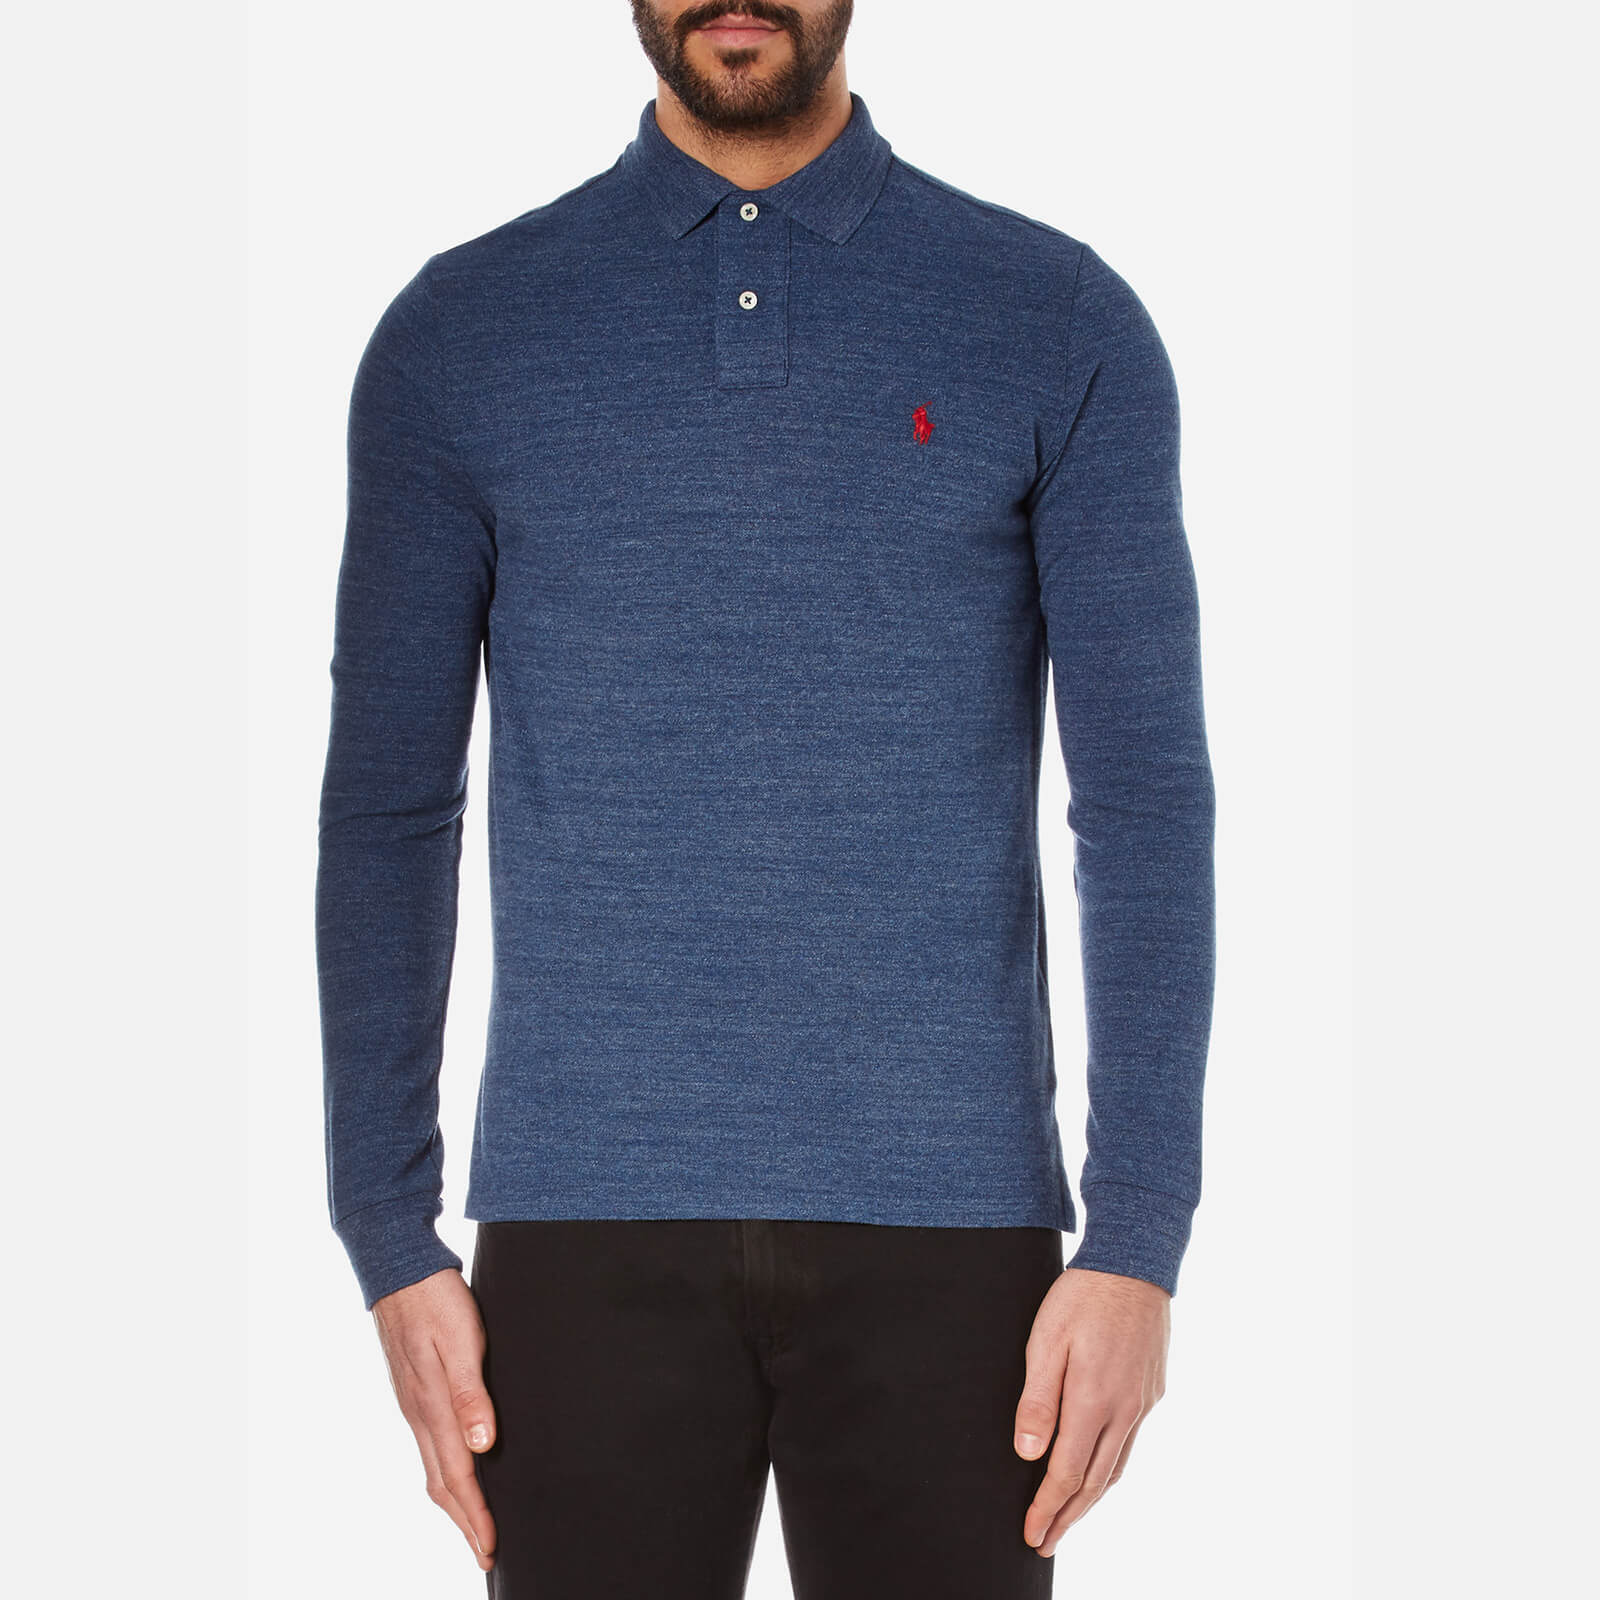 f5b43410fce2f Polo Ralph Lauren Men s Custom Fit Long Sleeve Polo Shirt - Classic Royal  Heather - Free UK Delivery over £50